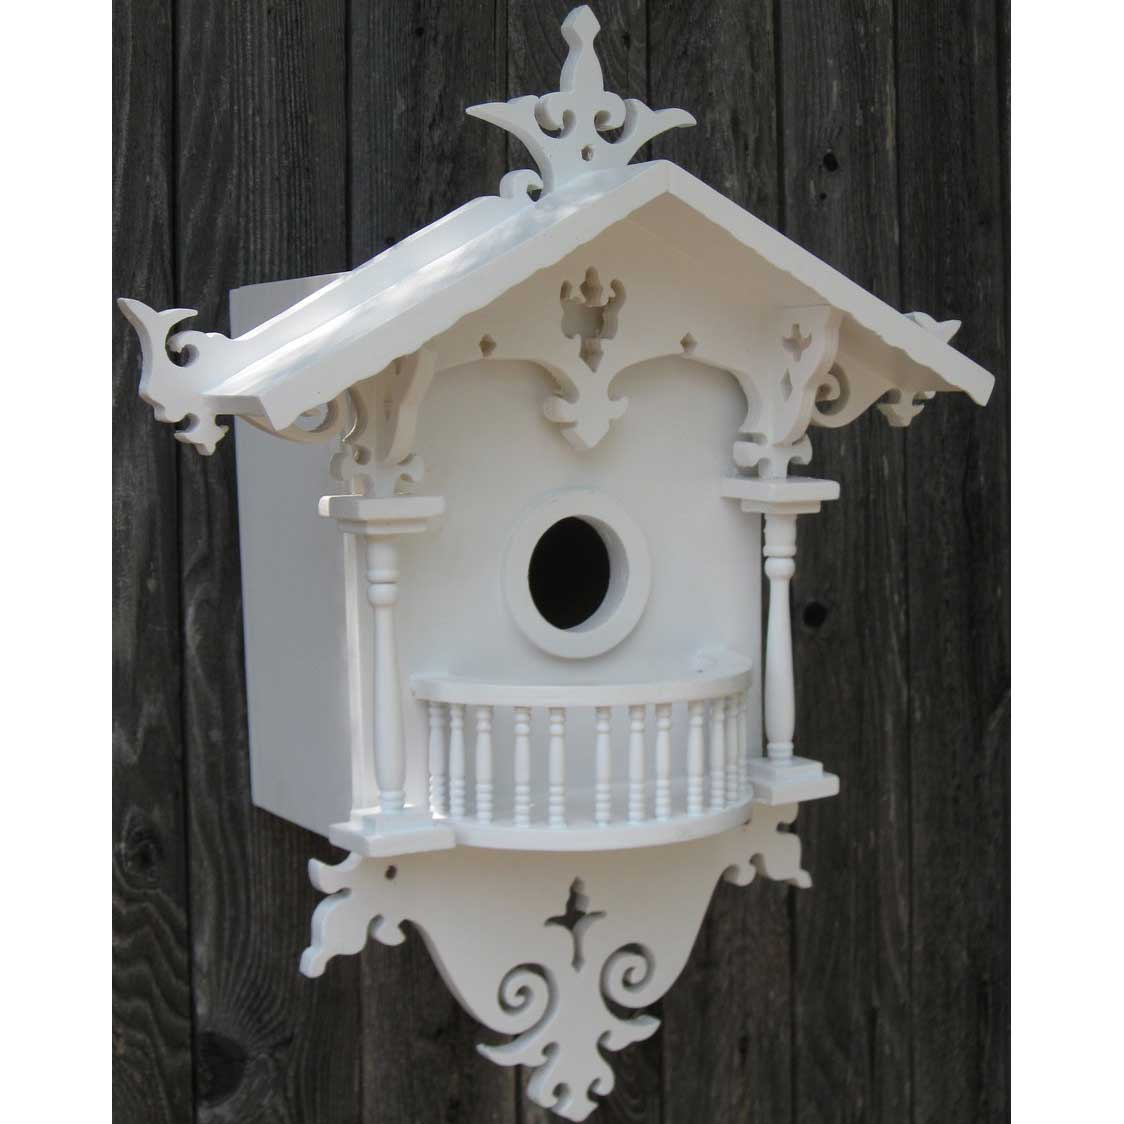 Outdoor Rope Light picture on Decorative Cuckoo Cottage Bird House 16877 with Outdoor Rope Light, Outdoor Lighting ideas 9d2b7131e7cbc7fa10b2a9775b19b3c1